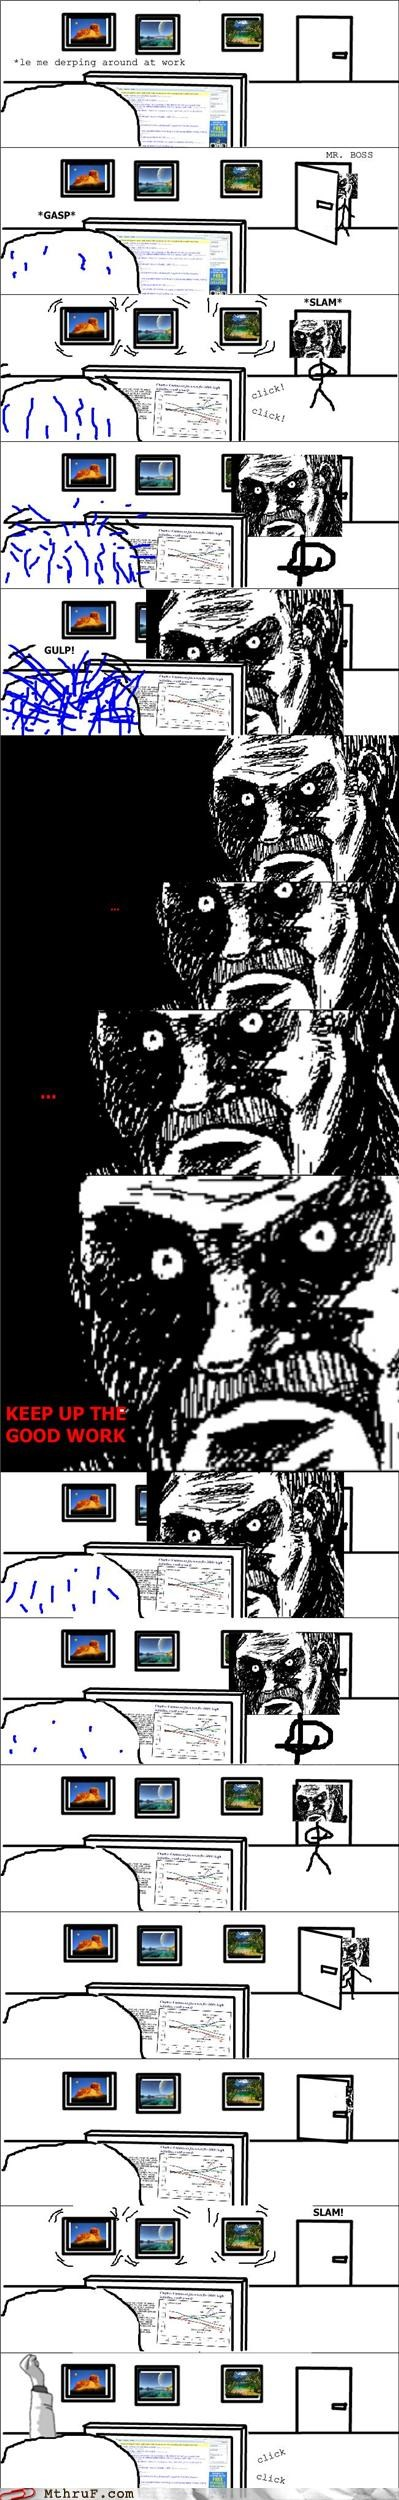 boss comic fear manager procrastination rage comic